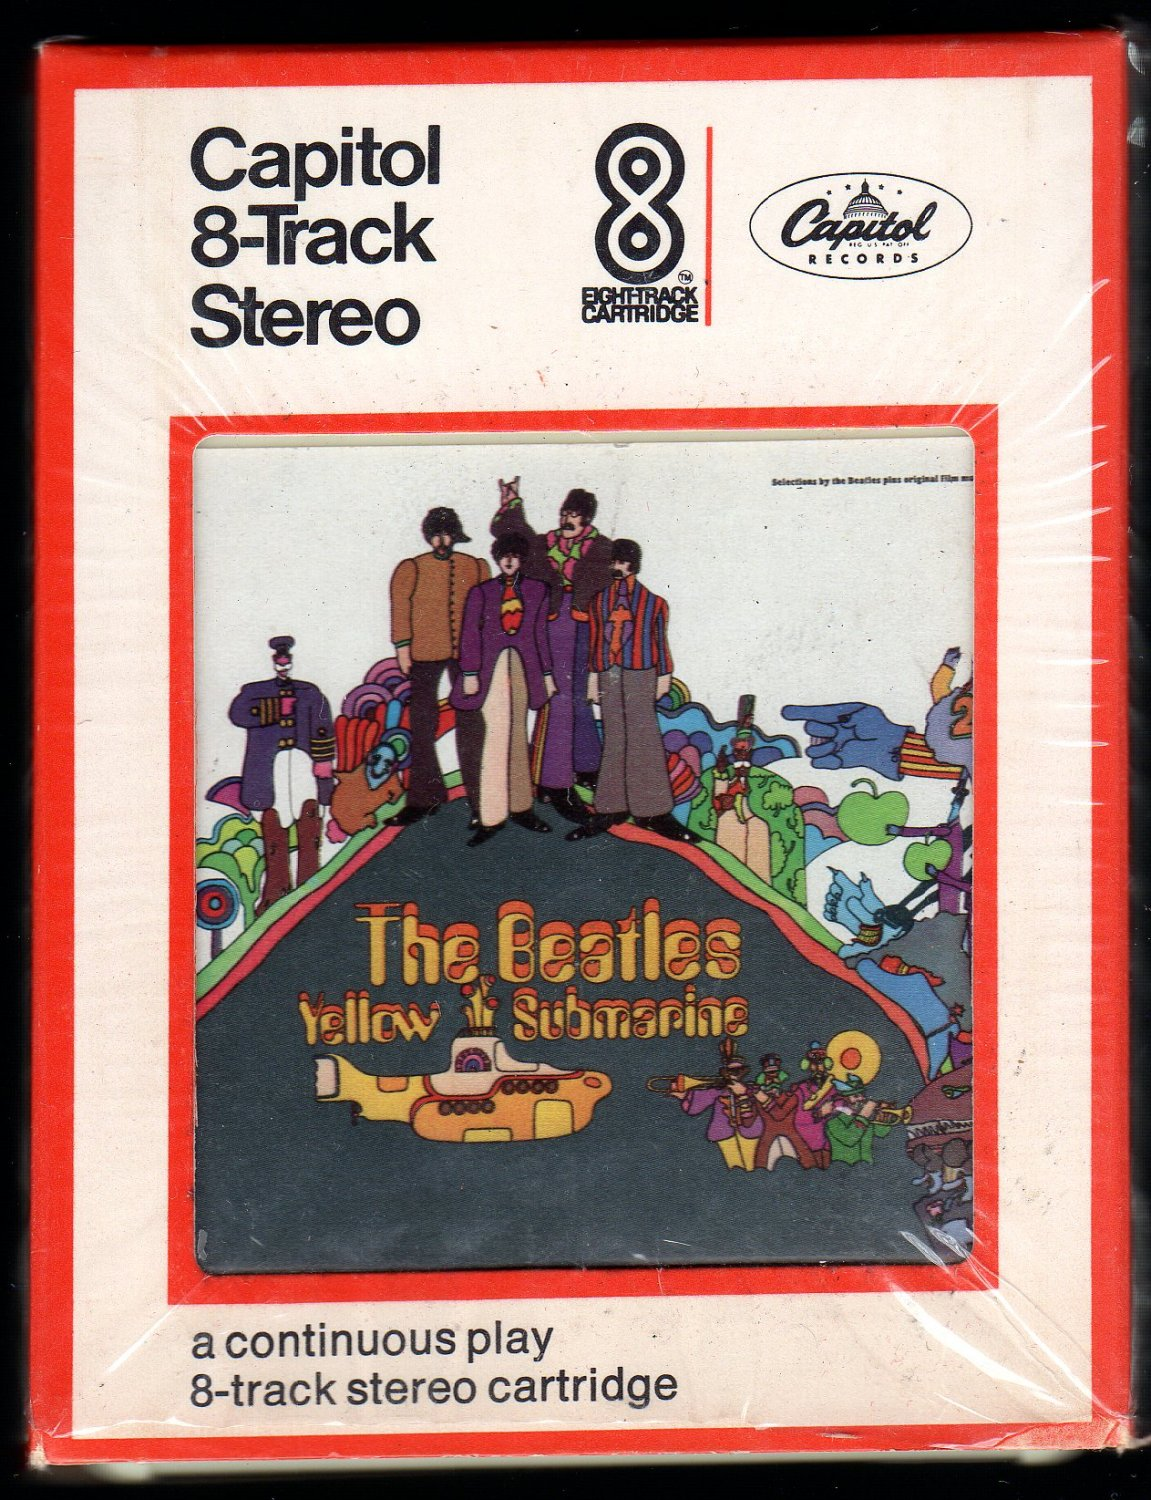 The Beatles - Yellow Submarine 1969 CAPITOL A53 8-TRACK TAPE